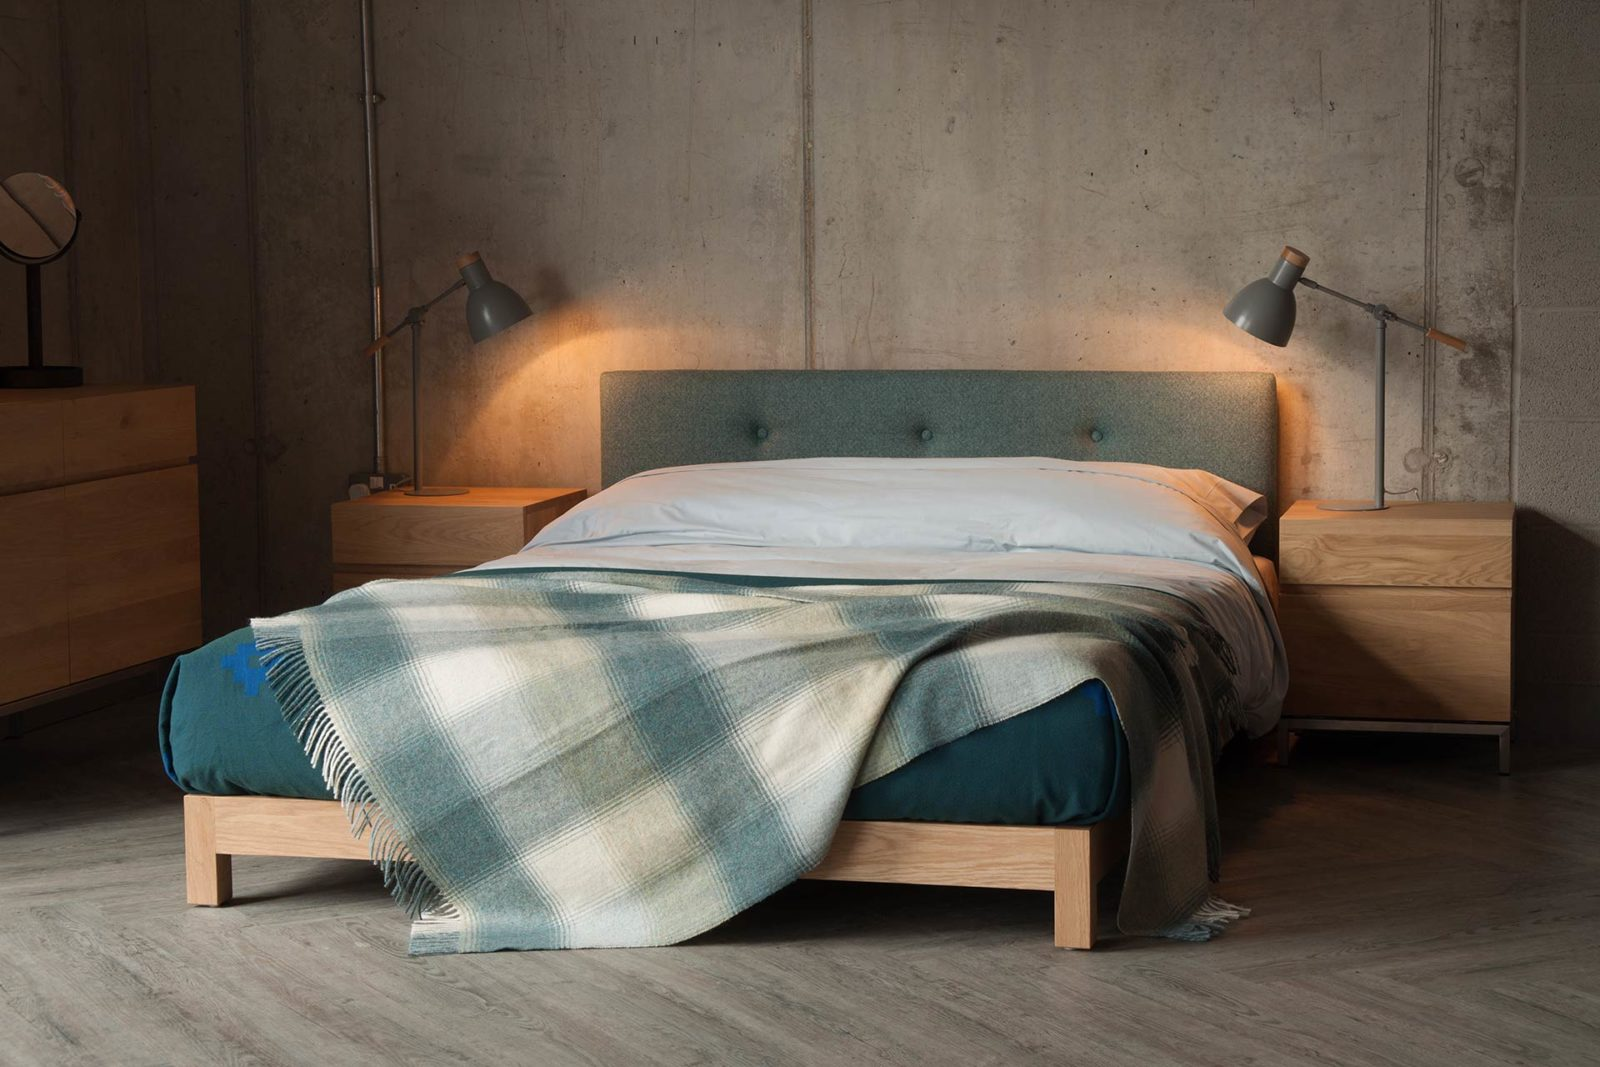 Made in uk our Iona low upholstered bed comes in a choice of timber and fabric, and in a full range of bed sizes.